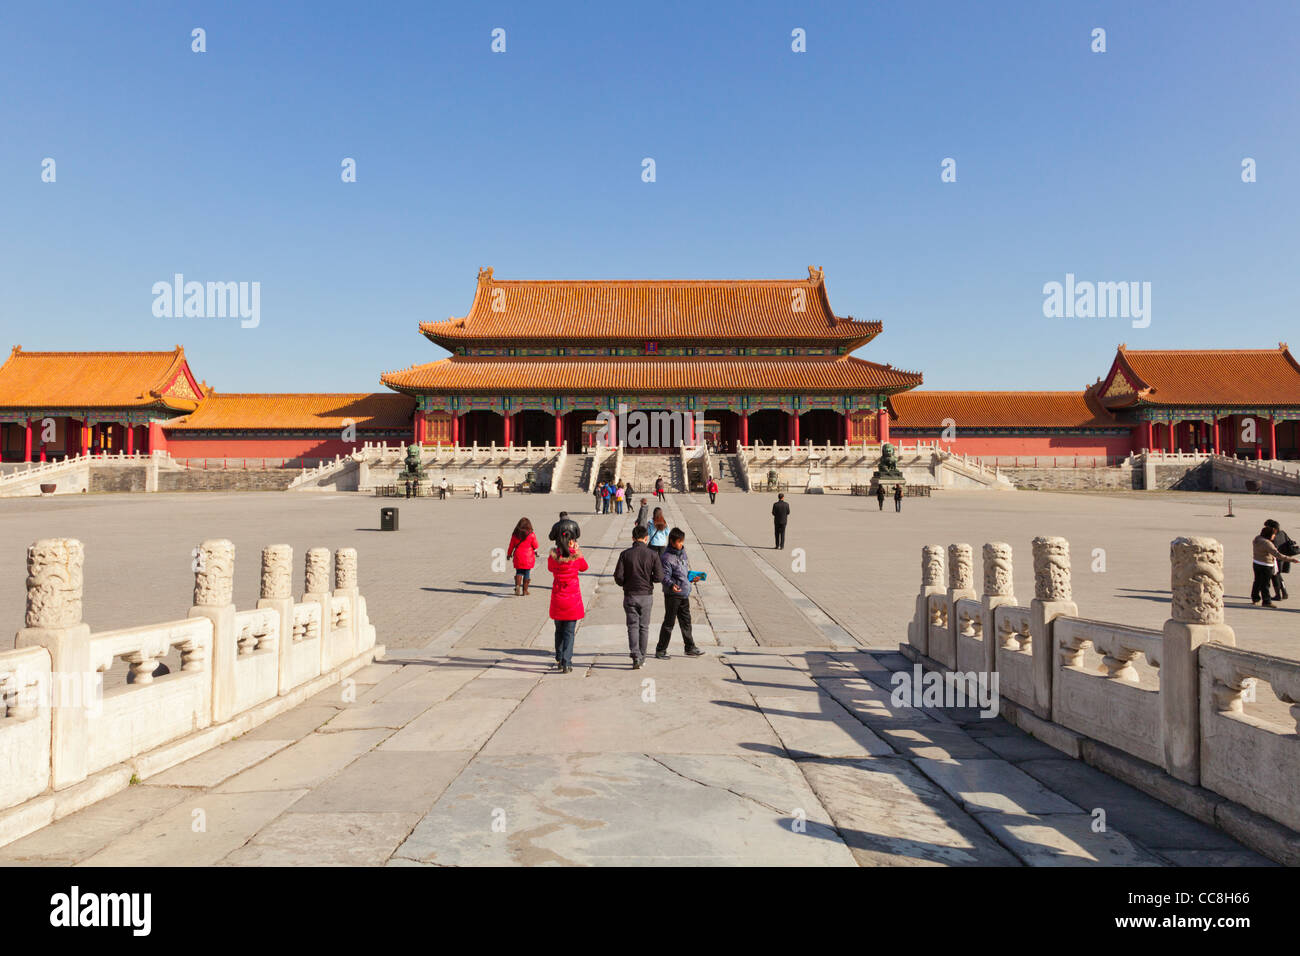 The Gate of Supreme Harmony, seen across the first courtyard in the Forbidden City, Beijing - Stock Image